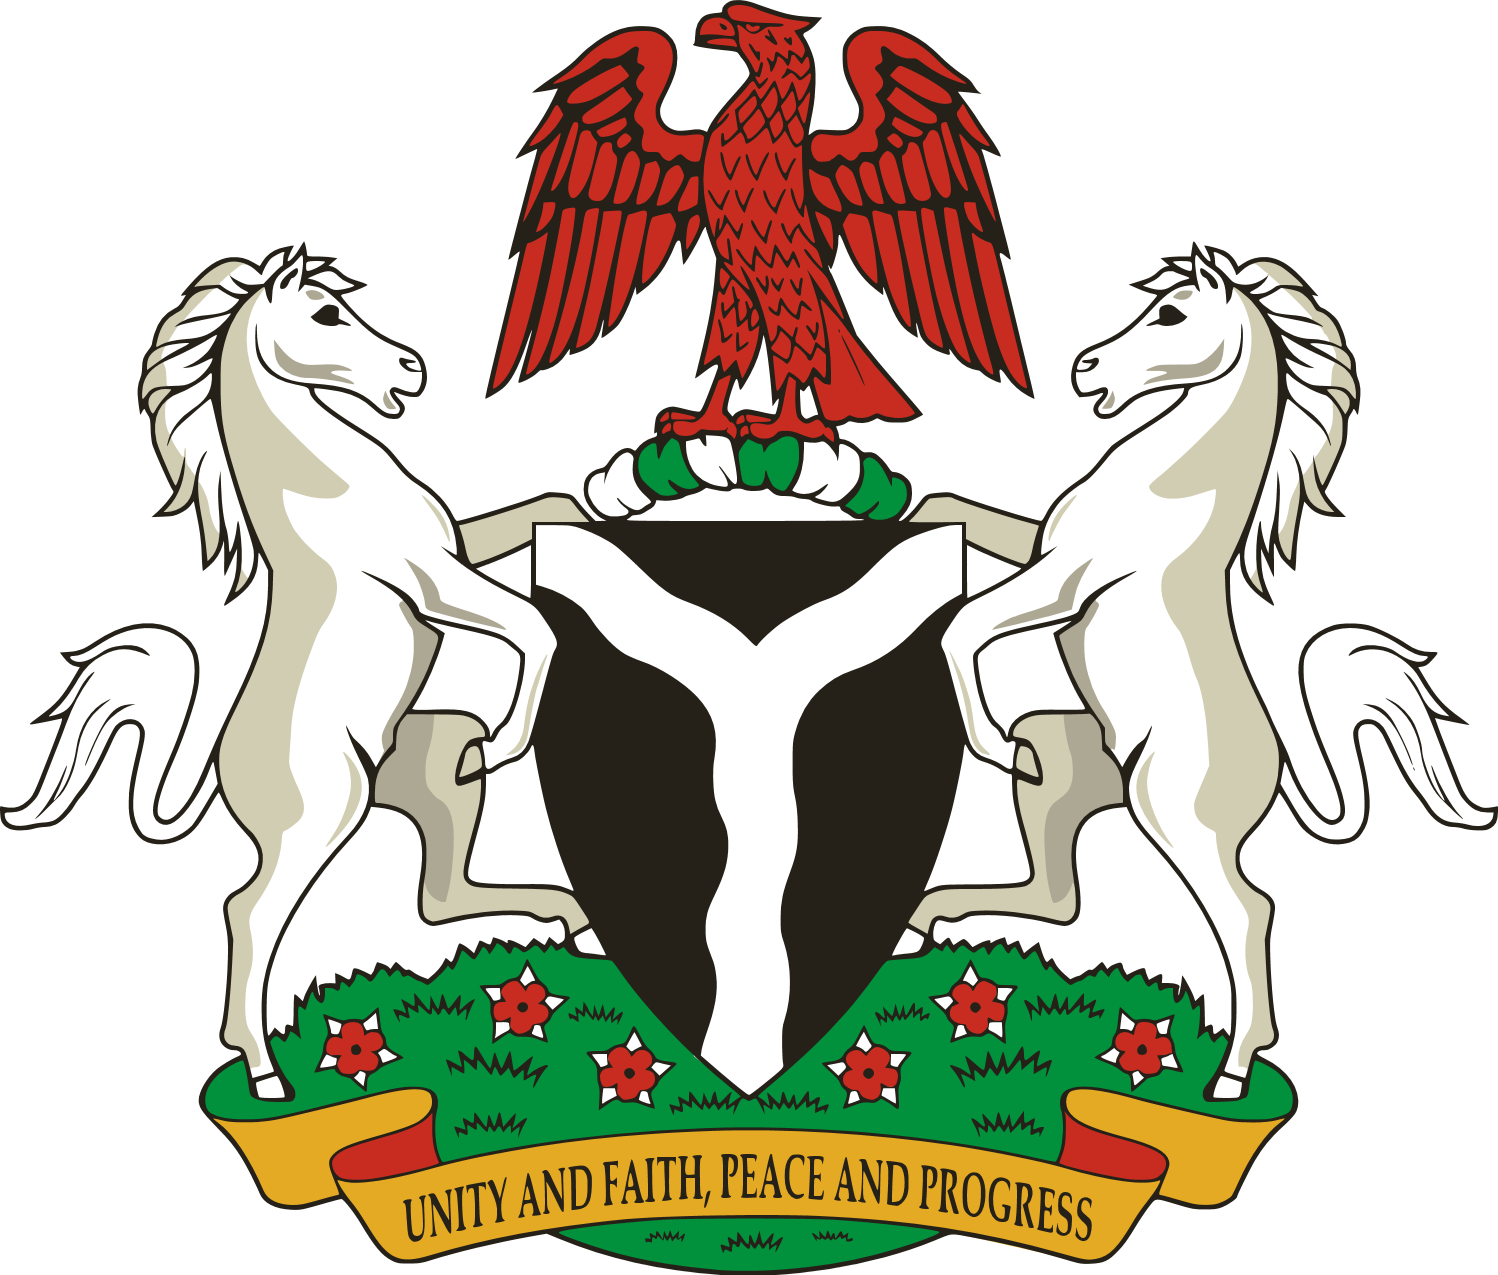 nigeria's coat of arms